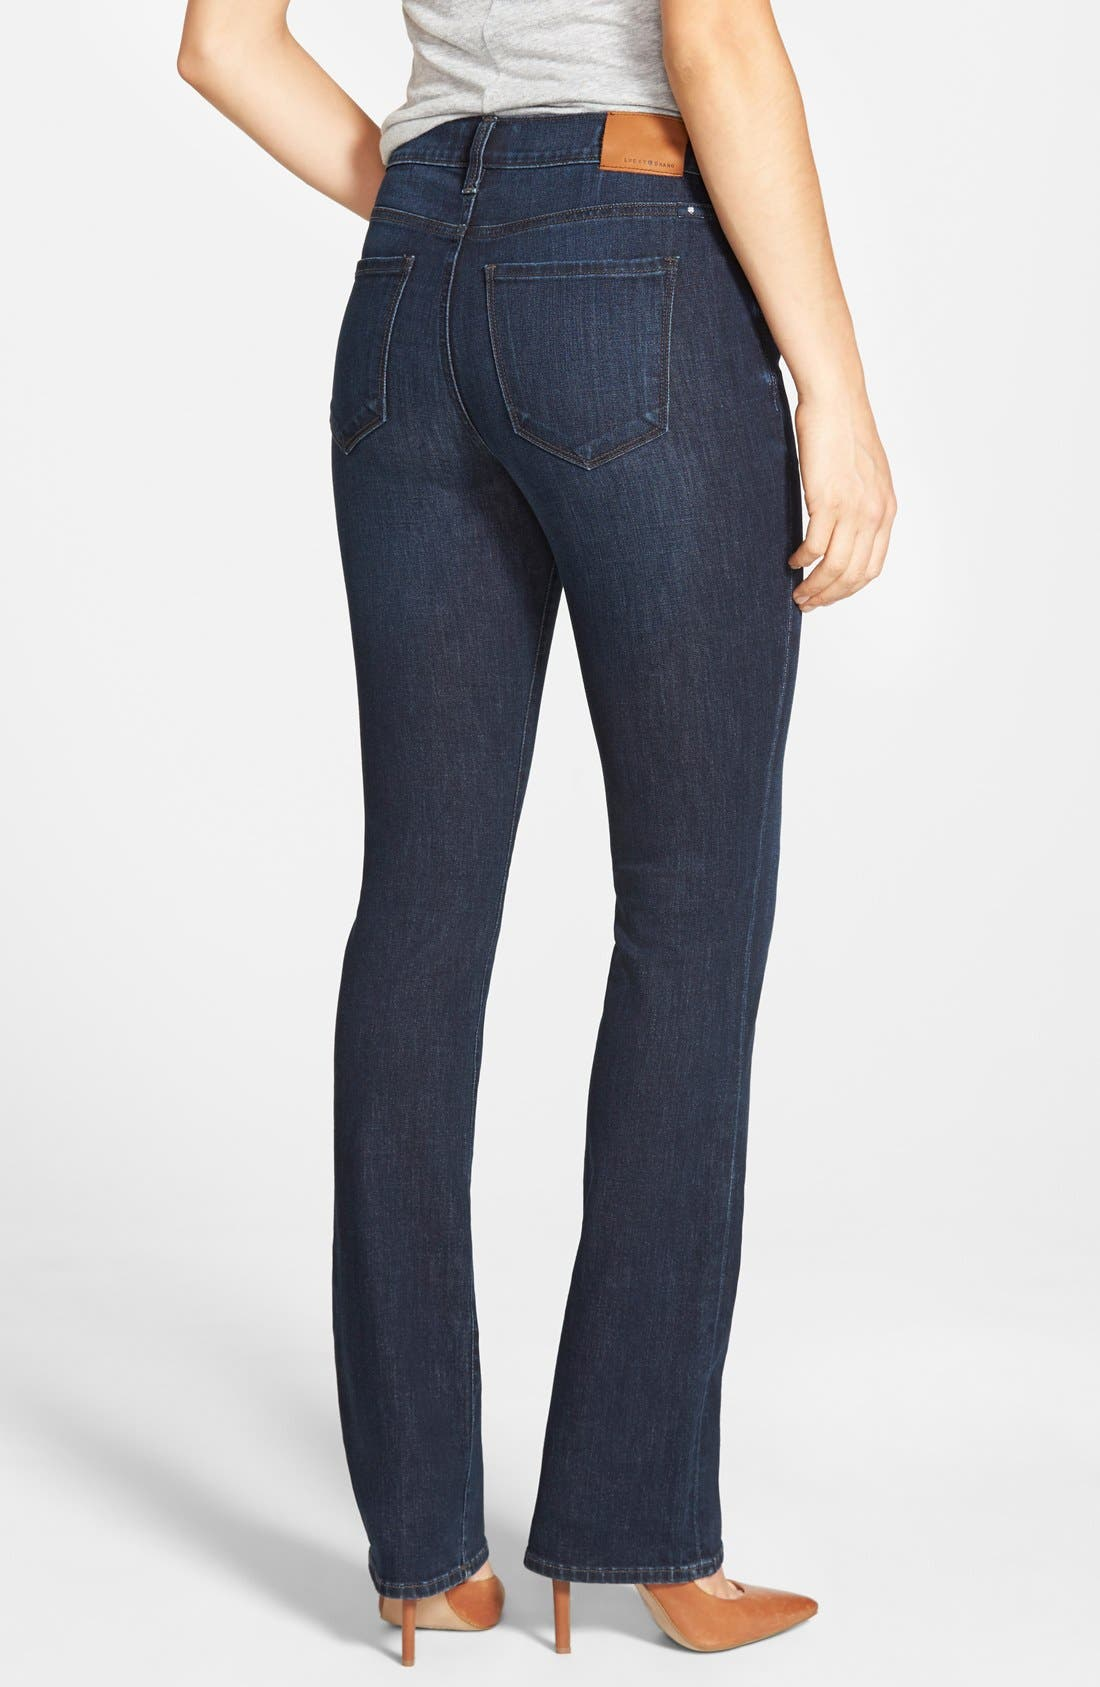 'Brooke' Stretch Bootcut Jeans,                             Alternate thumbnail 3, color,                             421